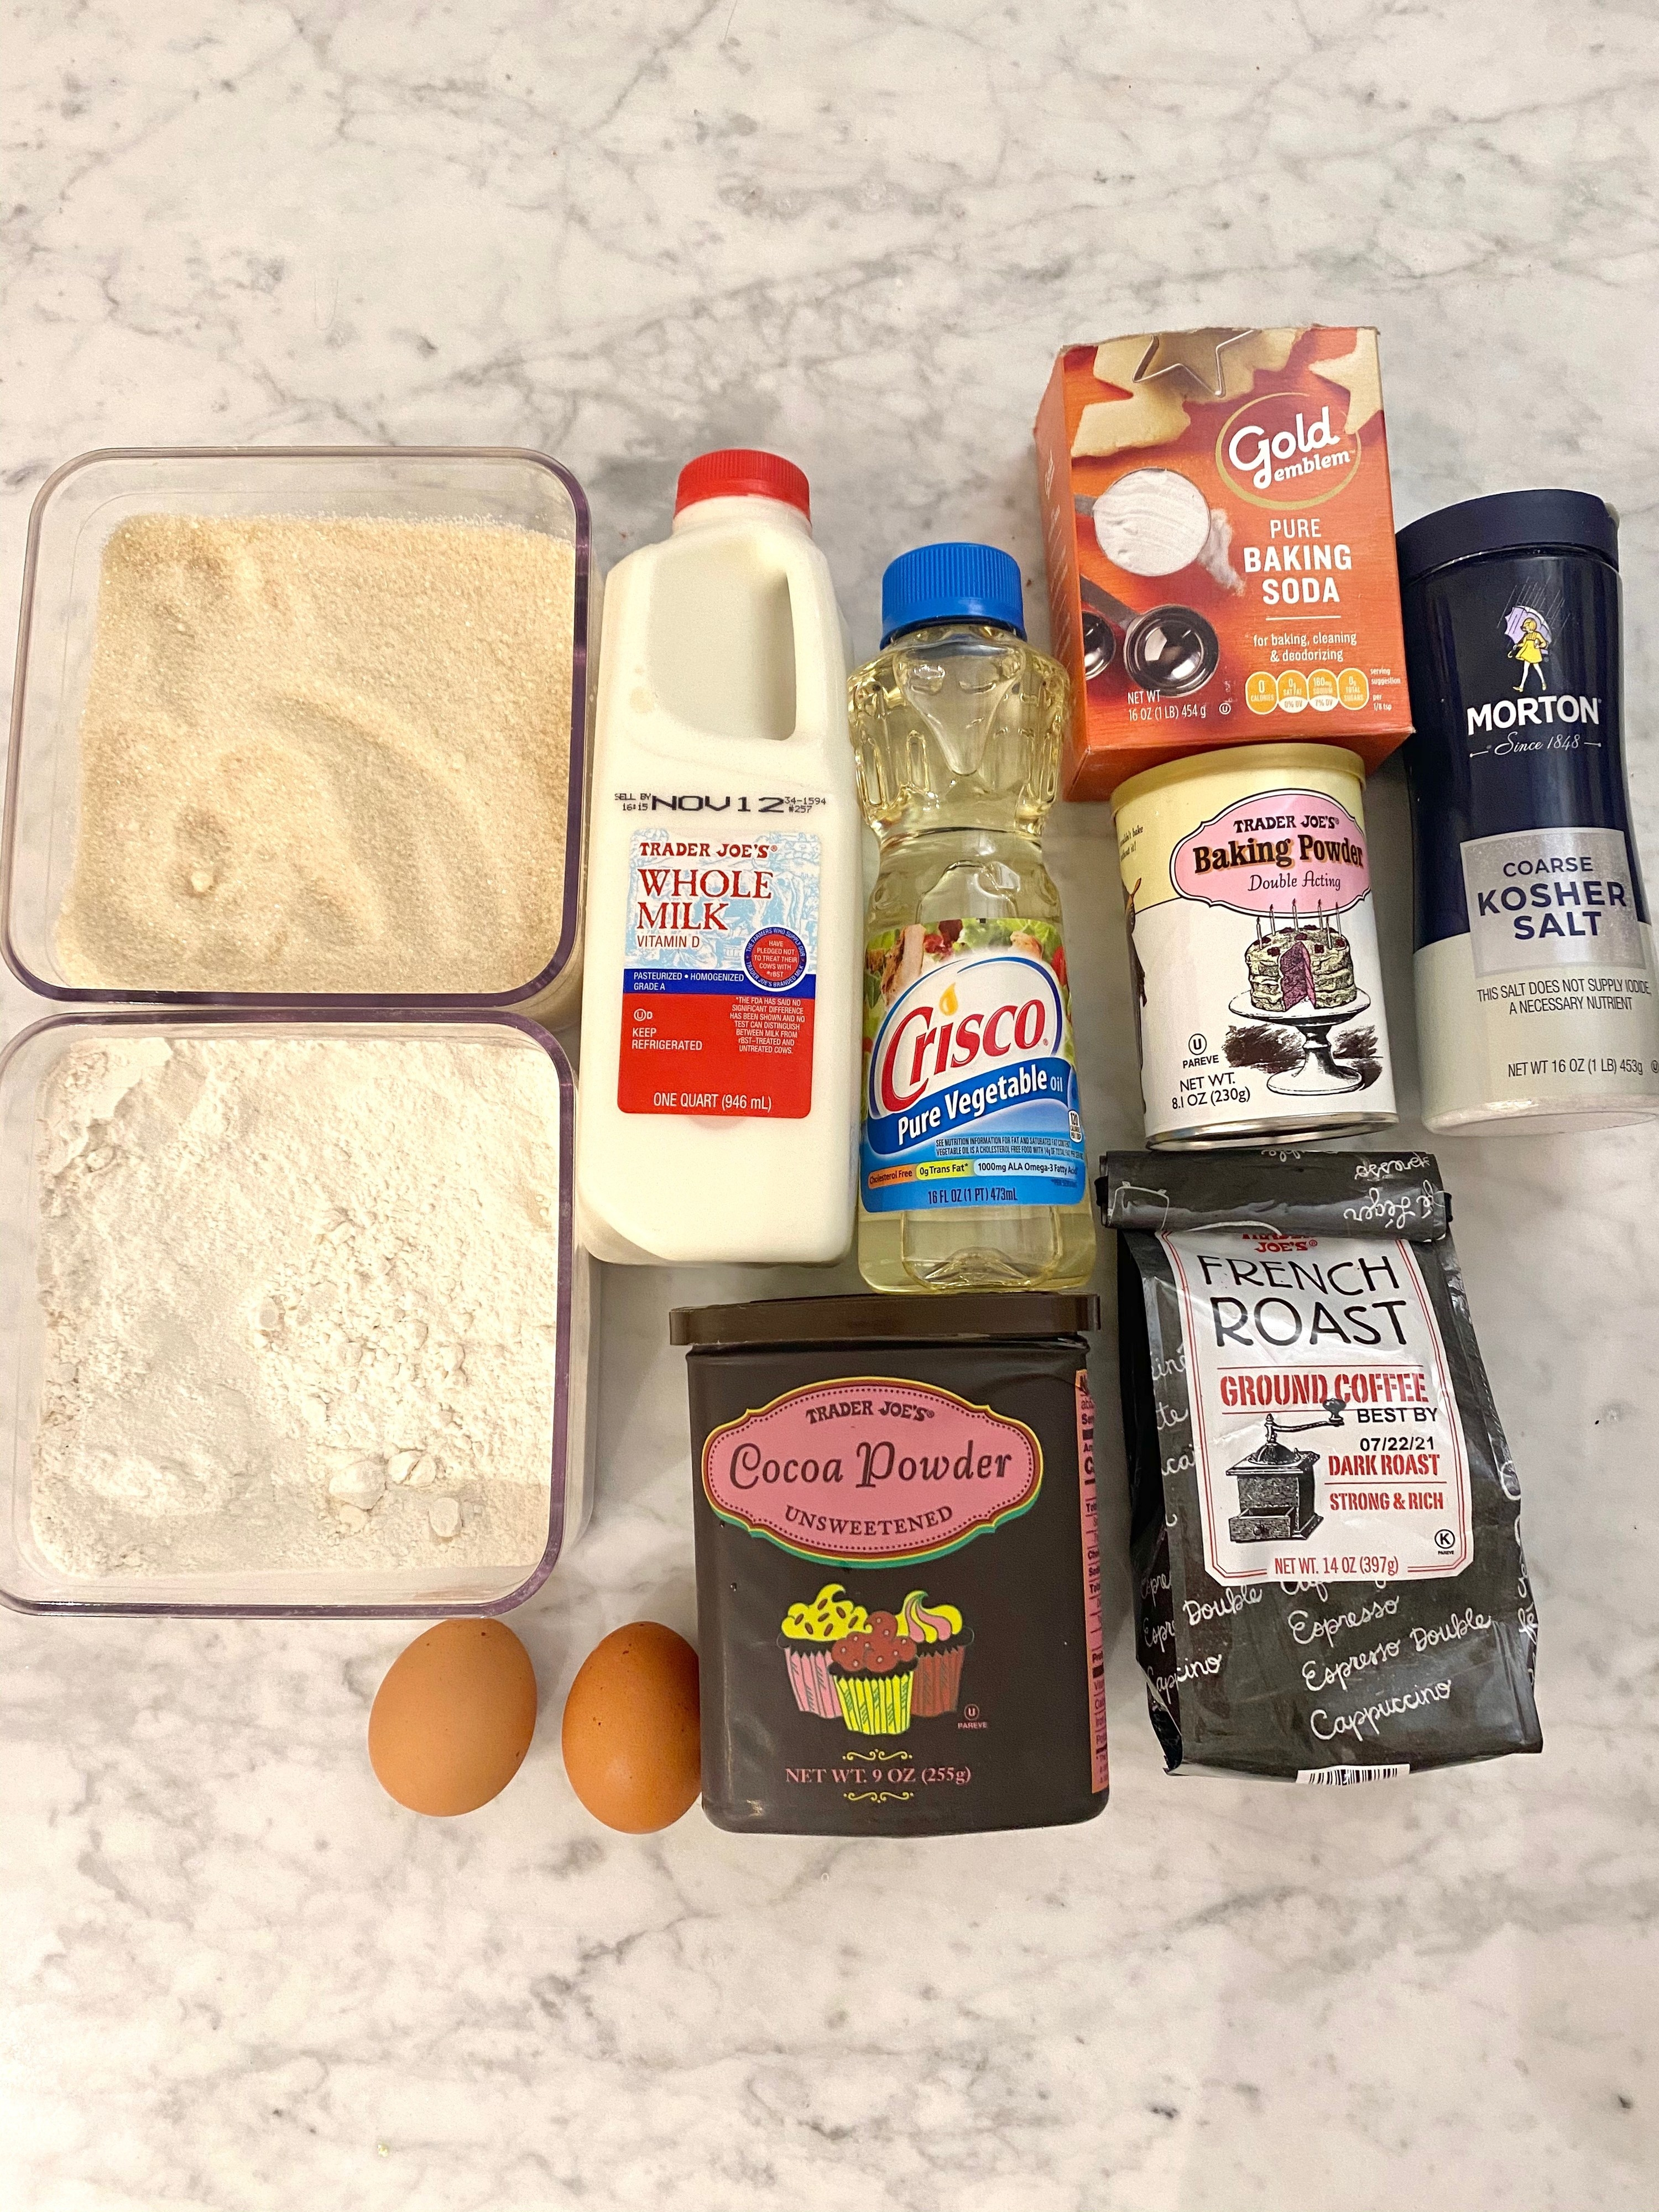 Ingredients for Nana's devil's food cake including flour, sugar, eggs, cocoa, and more.